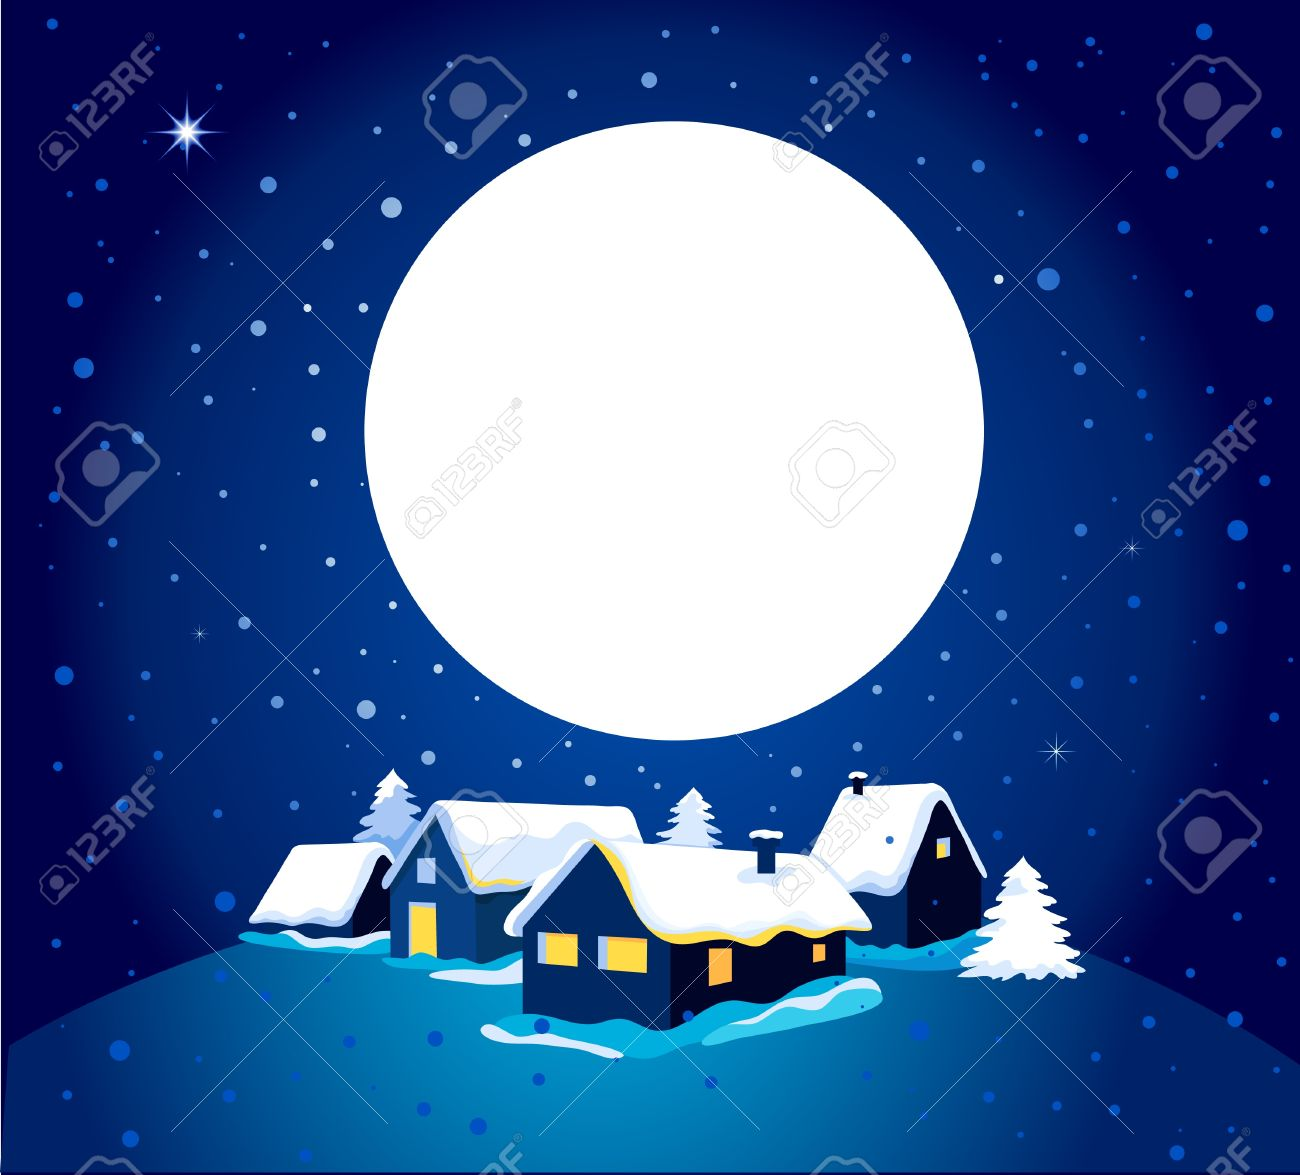 Christmas card with night town and snow Stock Vector - 11037713